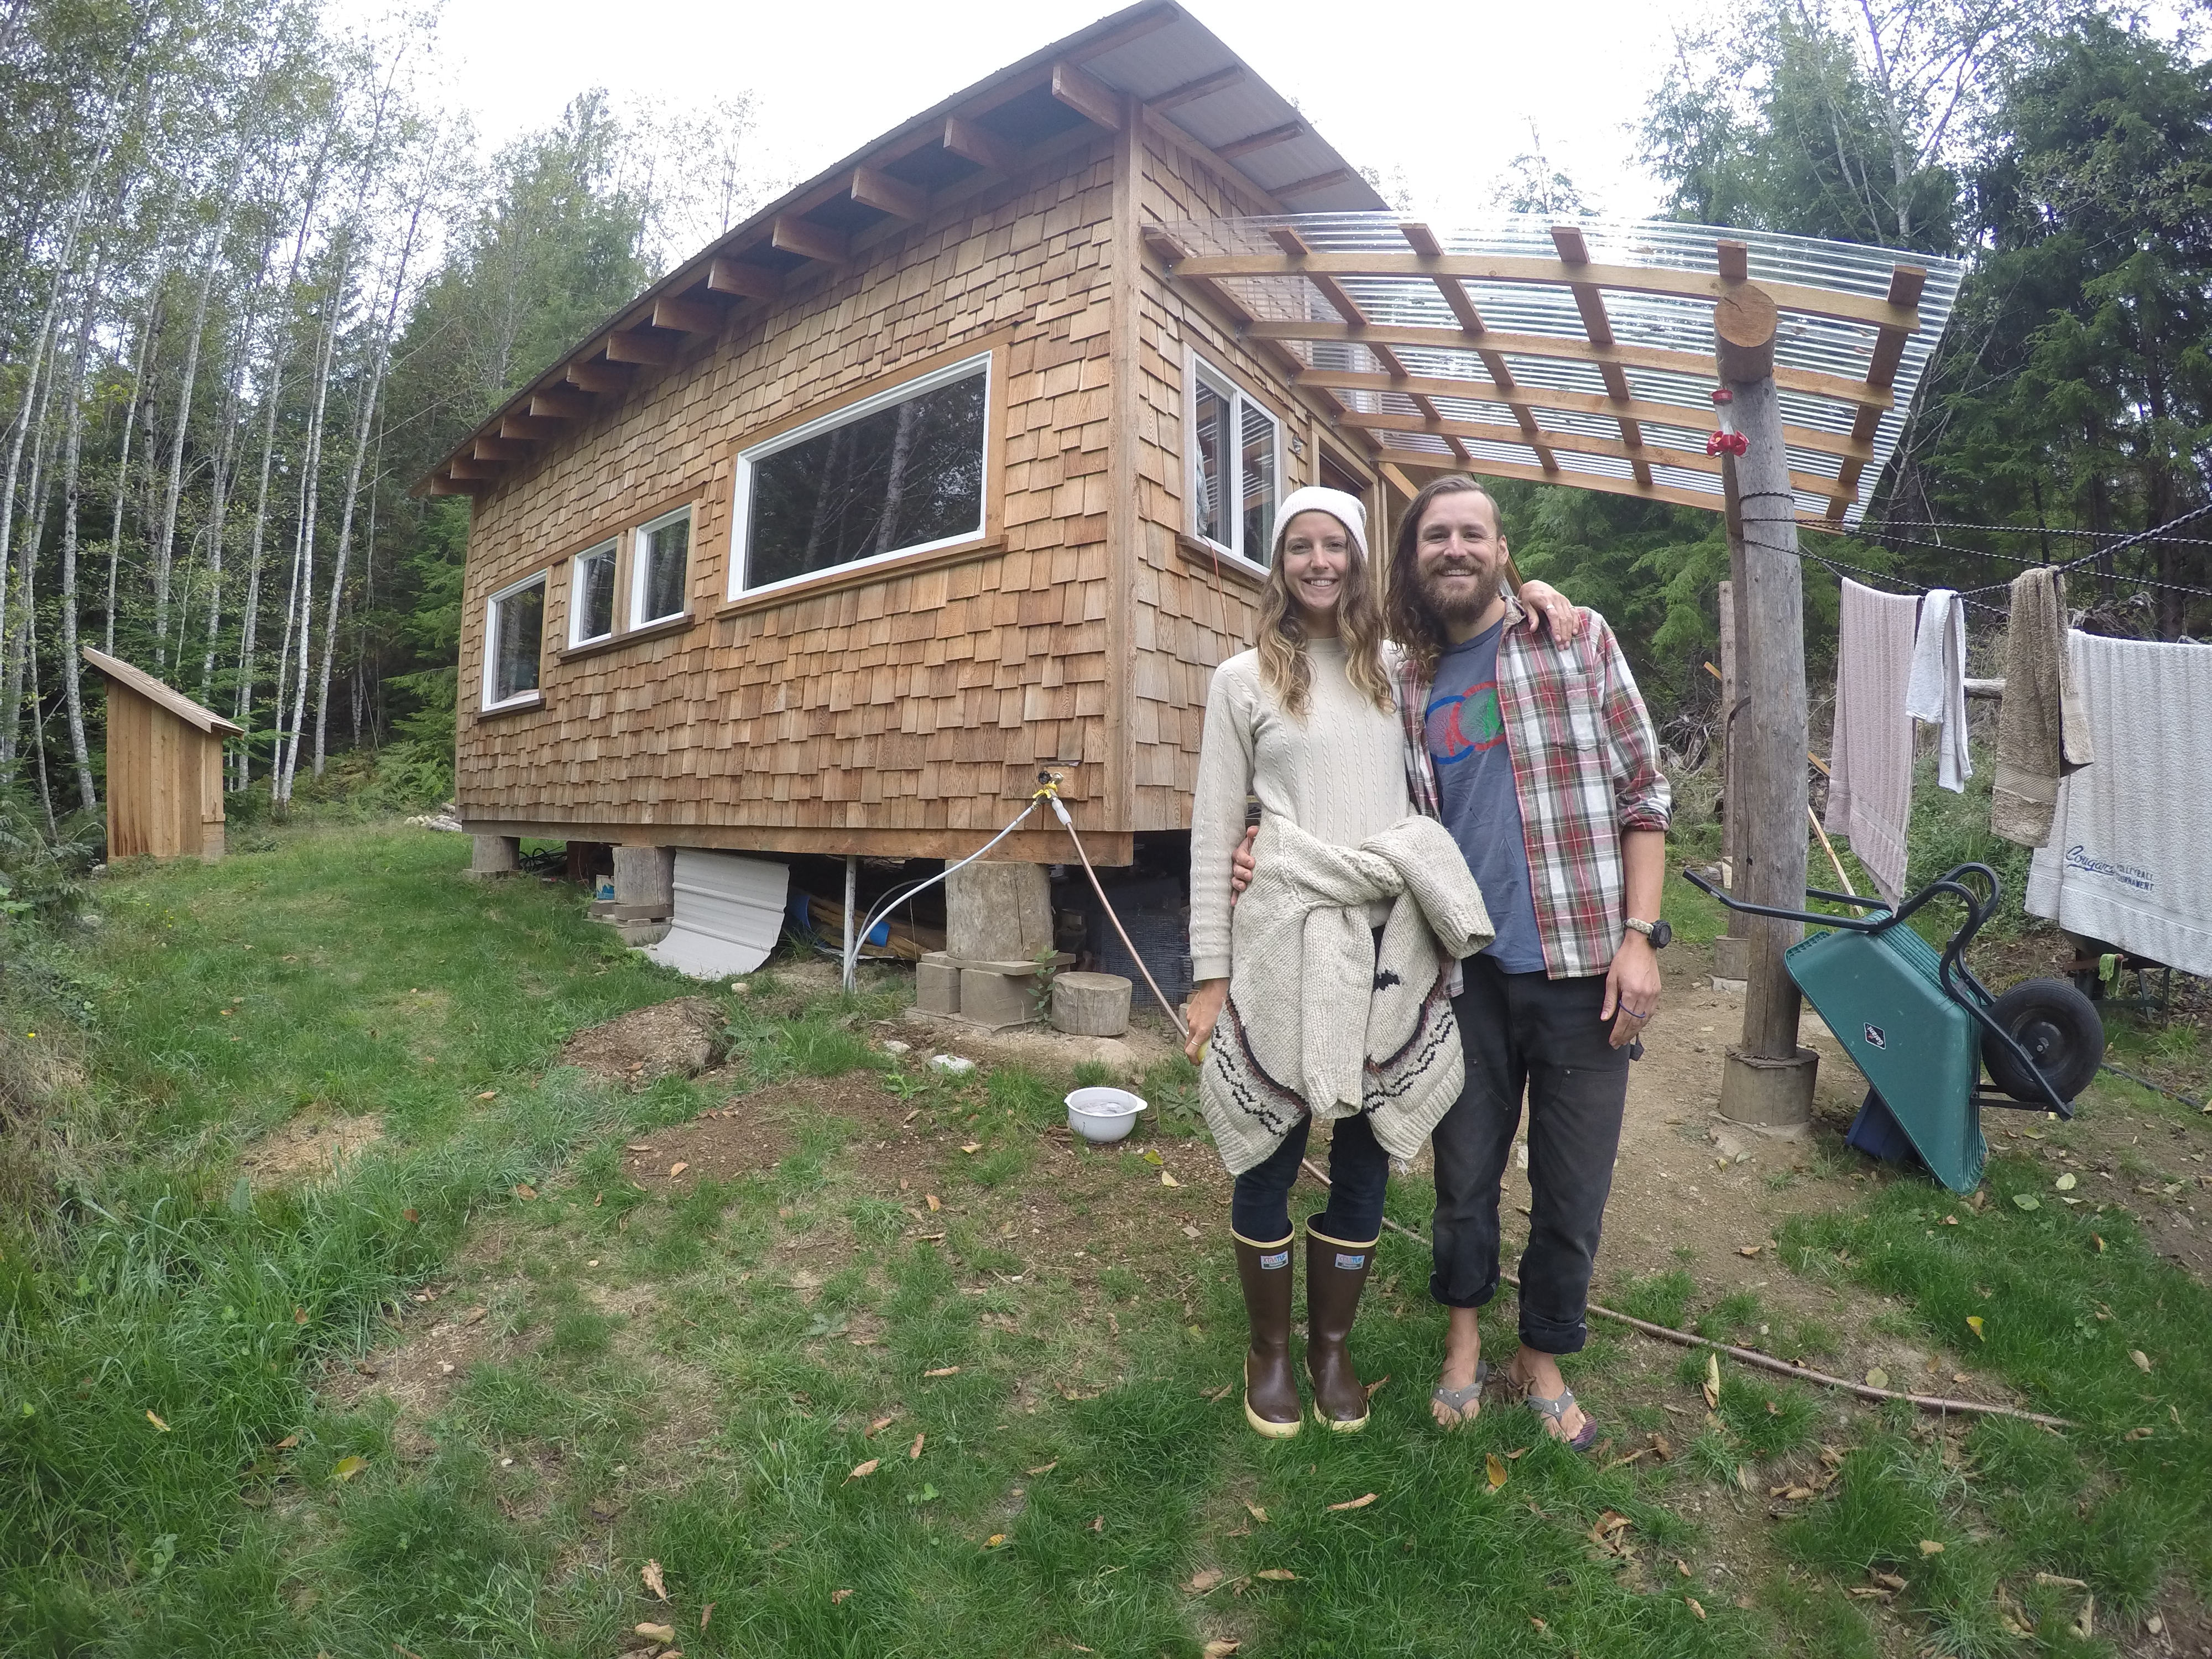 Saxony and Dan in front of his beautiful tiny home on Cortes Island